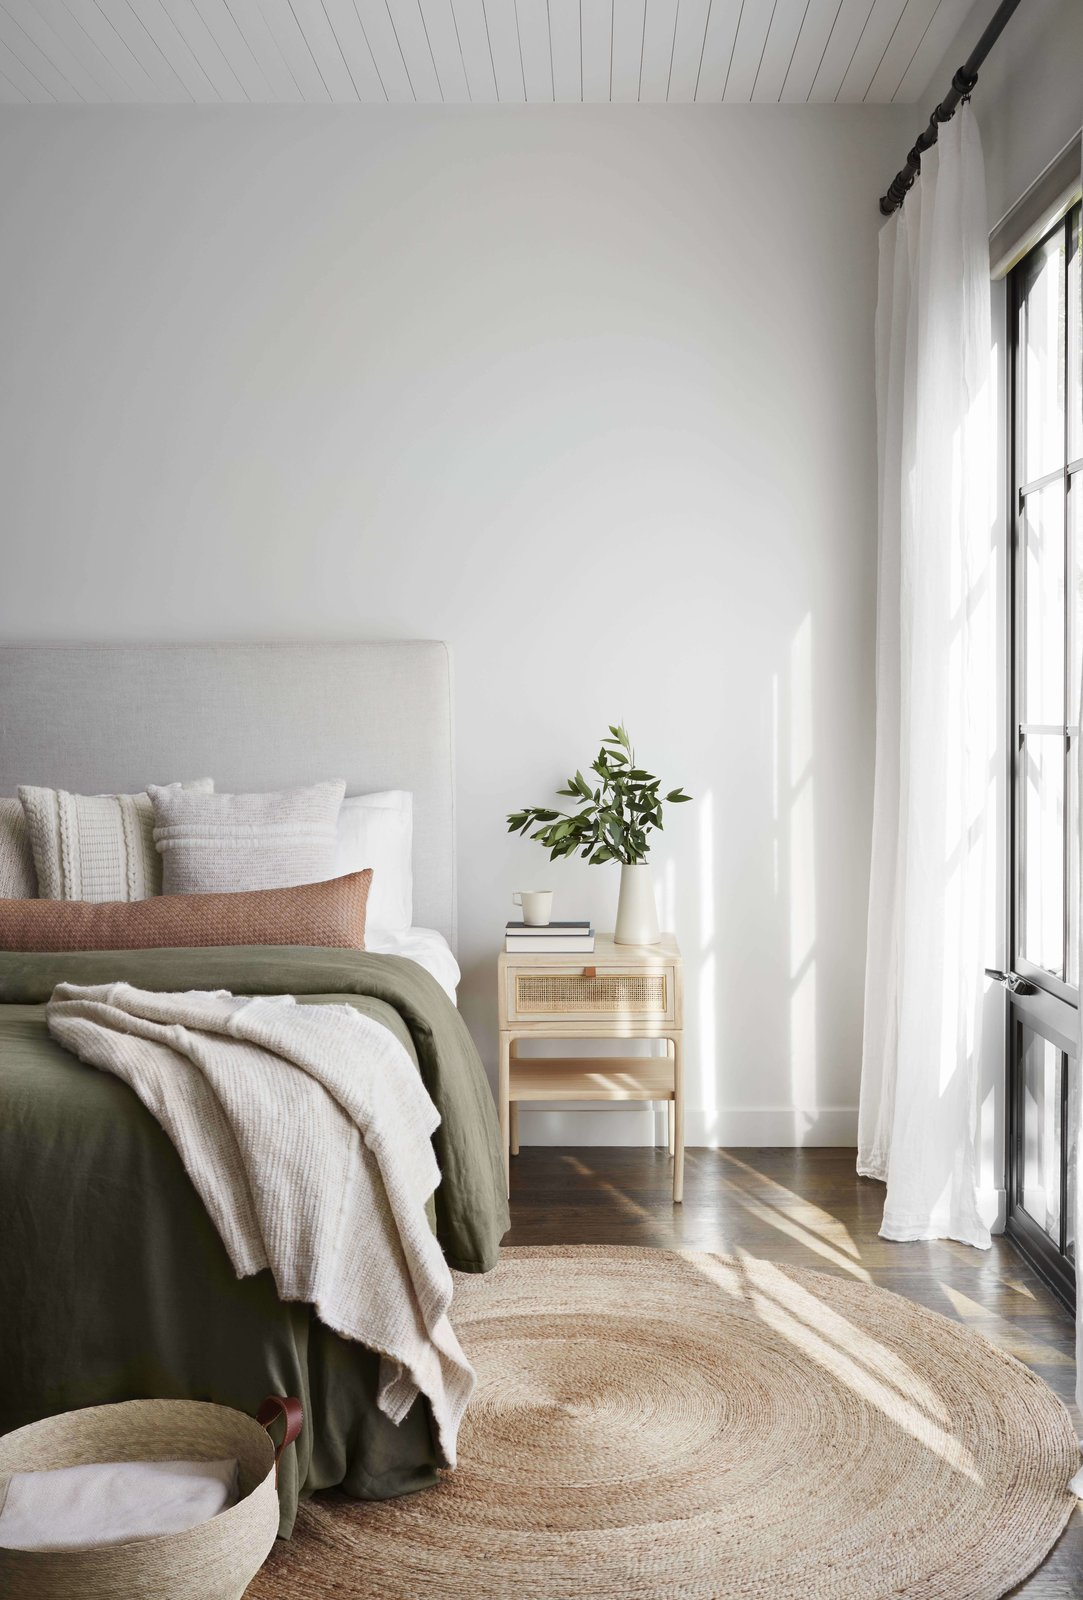 Our 30 Favorite Pieces From the Citizenry to Add to Your Bedroom Sanctuary